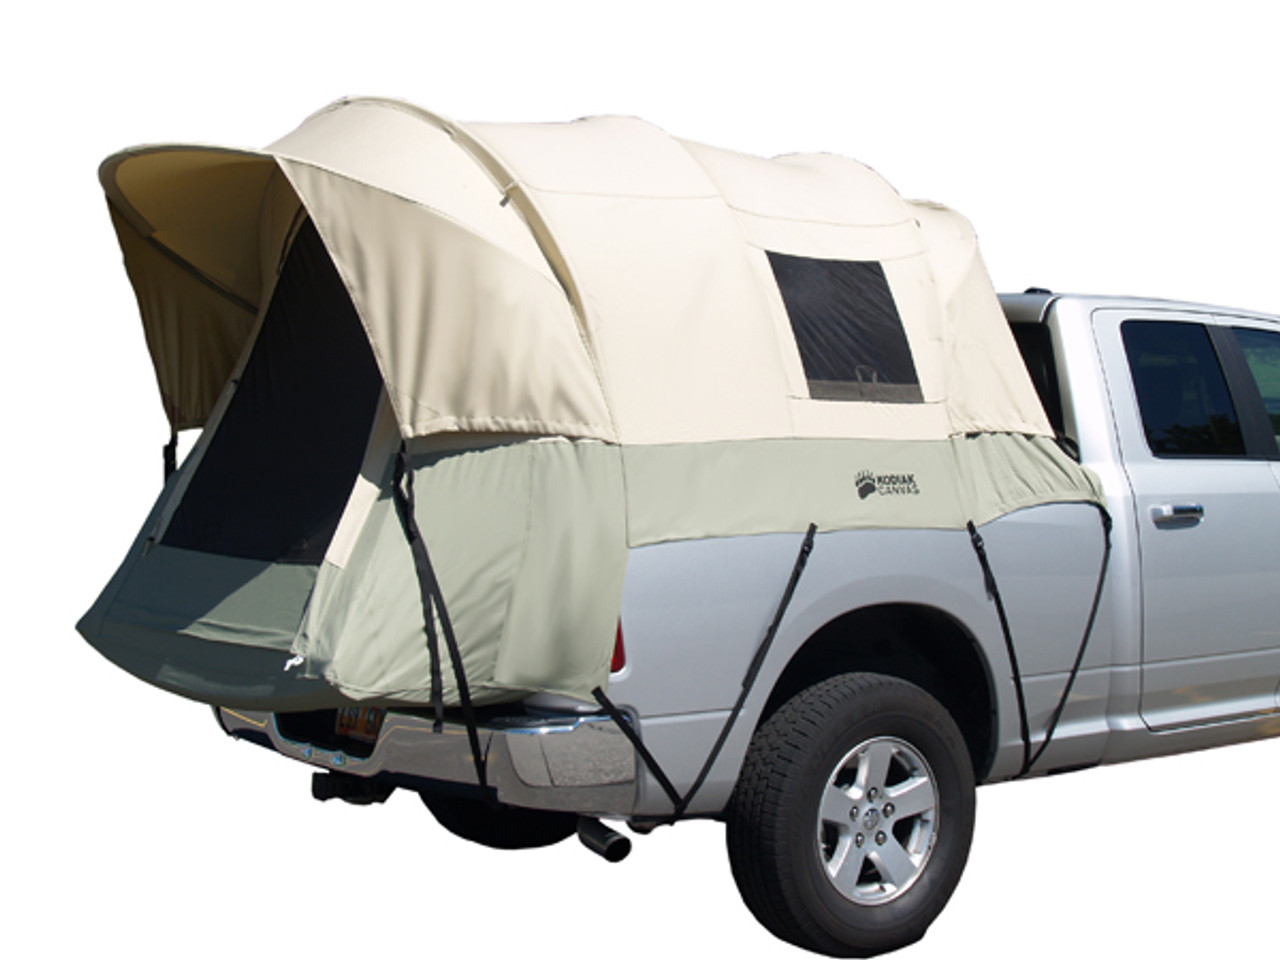 Tent Body 8 ft. Truck Tent (Tent body only)